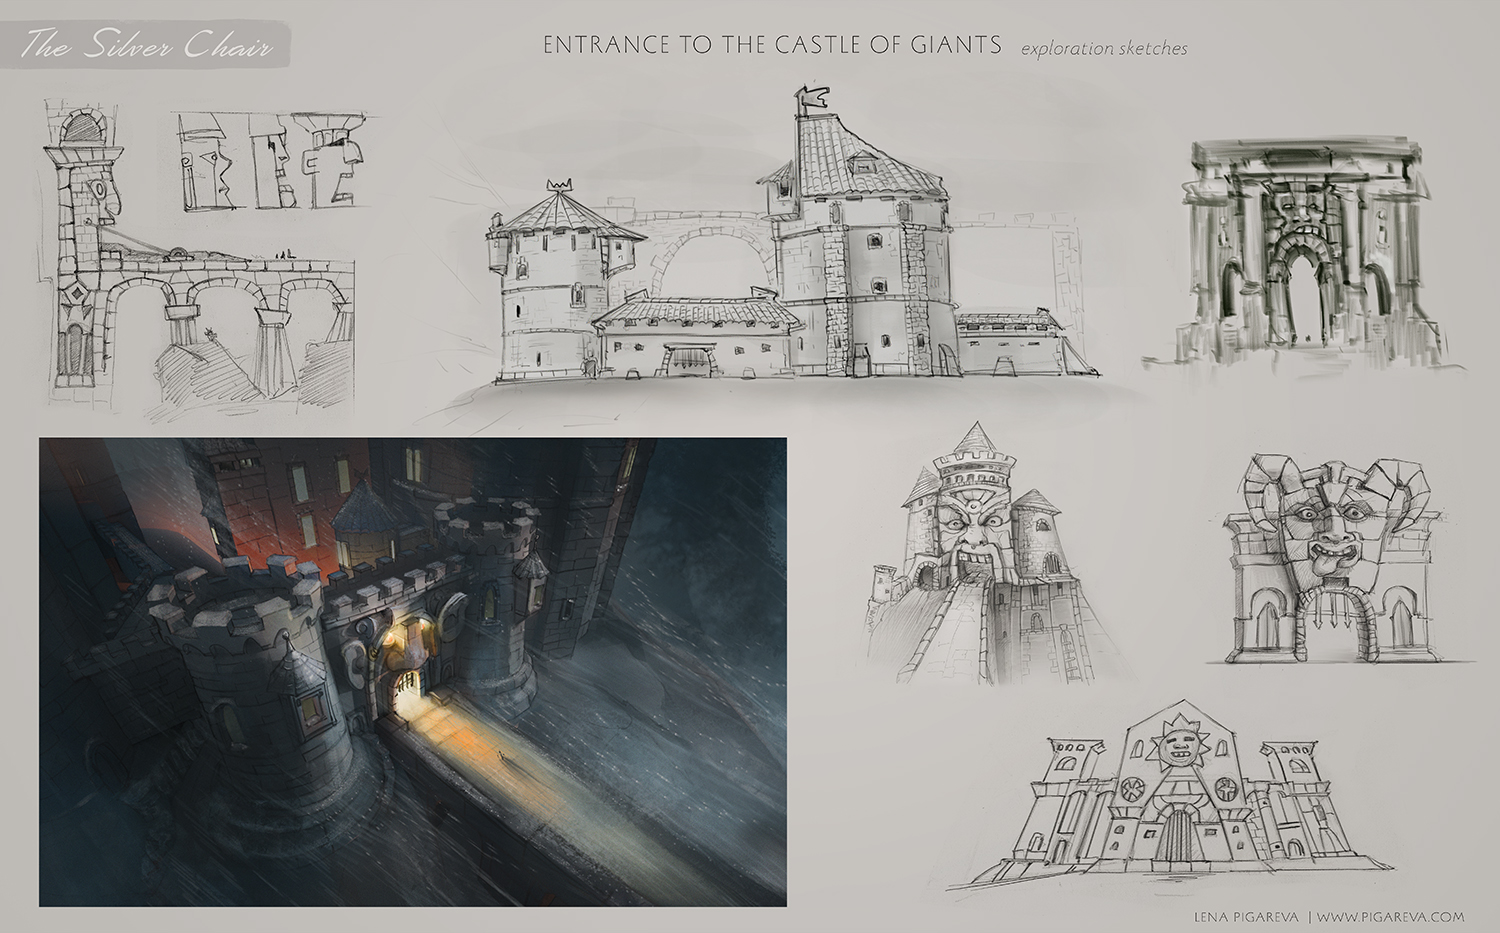 Silver-chair_Castle of giants_exploration sketches